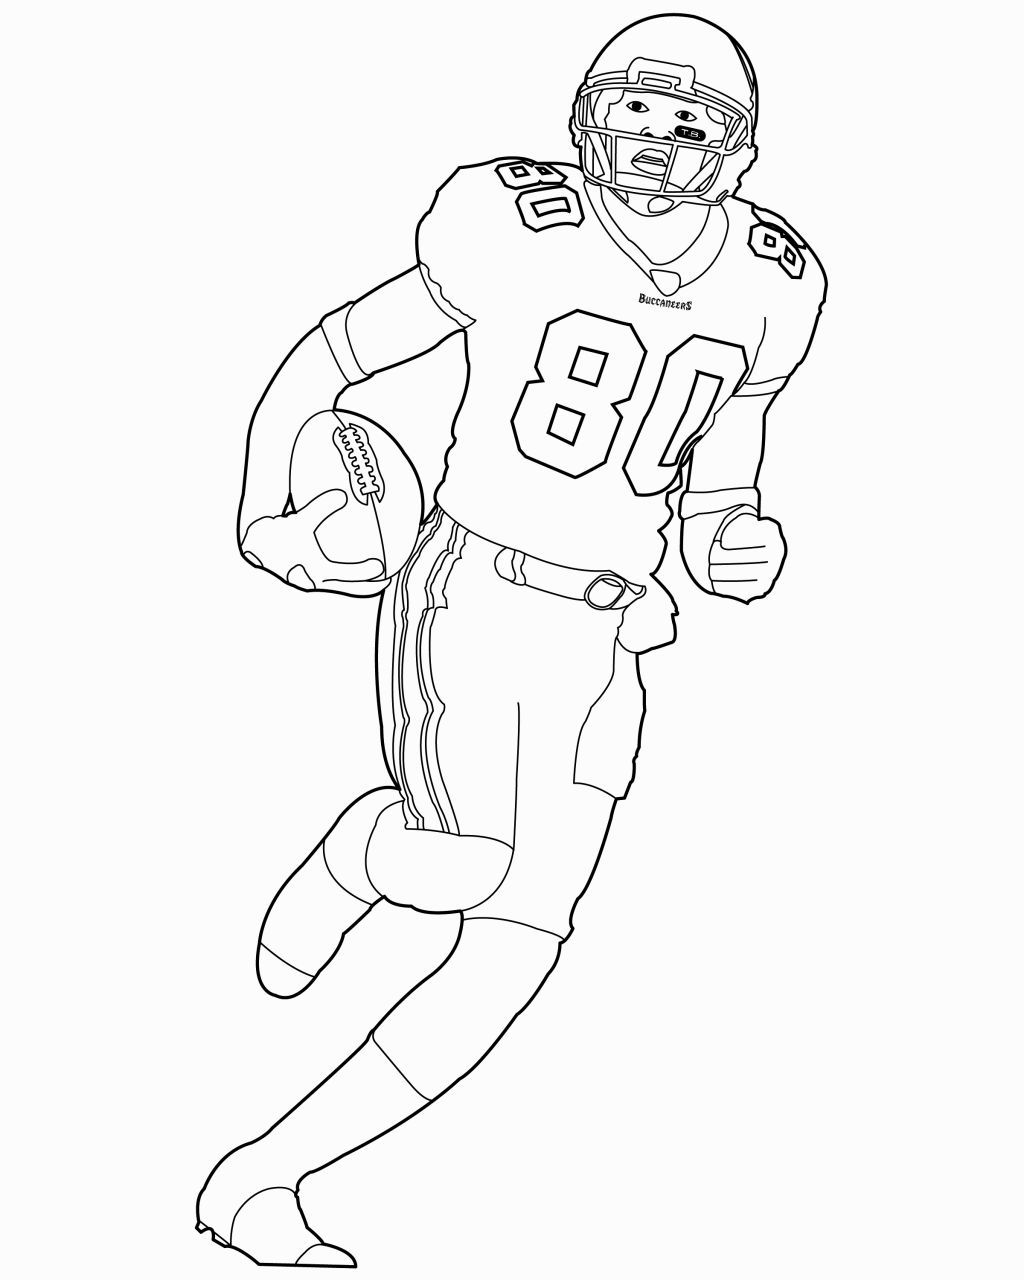 Nfl Coloring Page : coloring, Football, Coloring, Pages, Pages,, Sports, Print